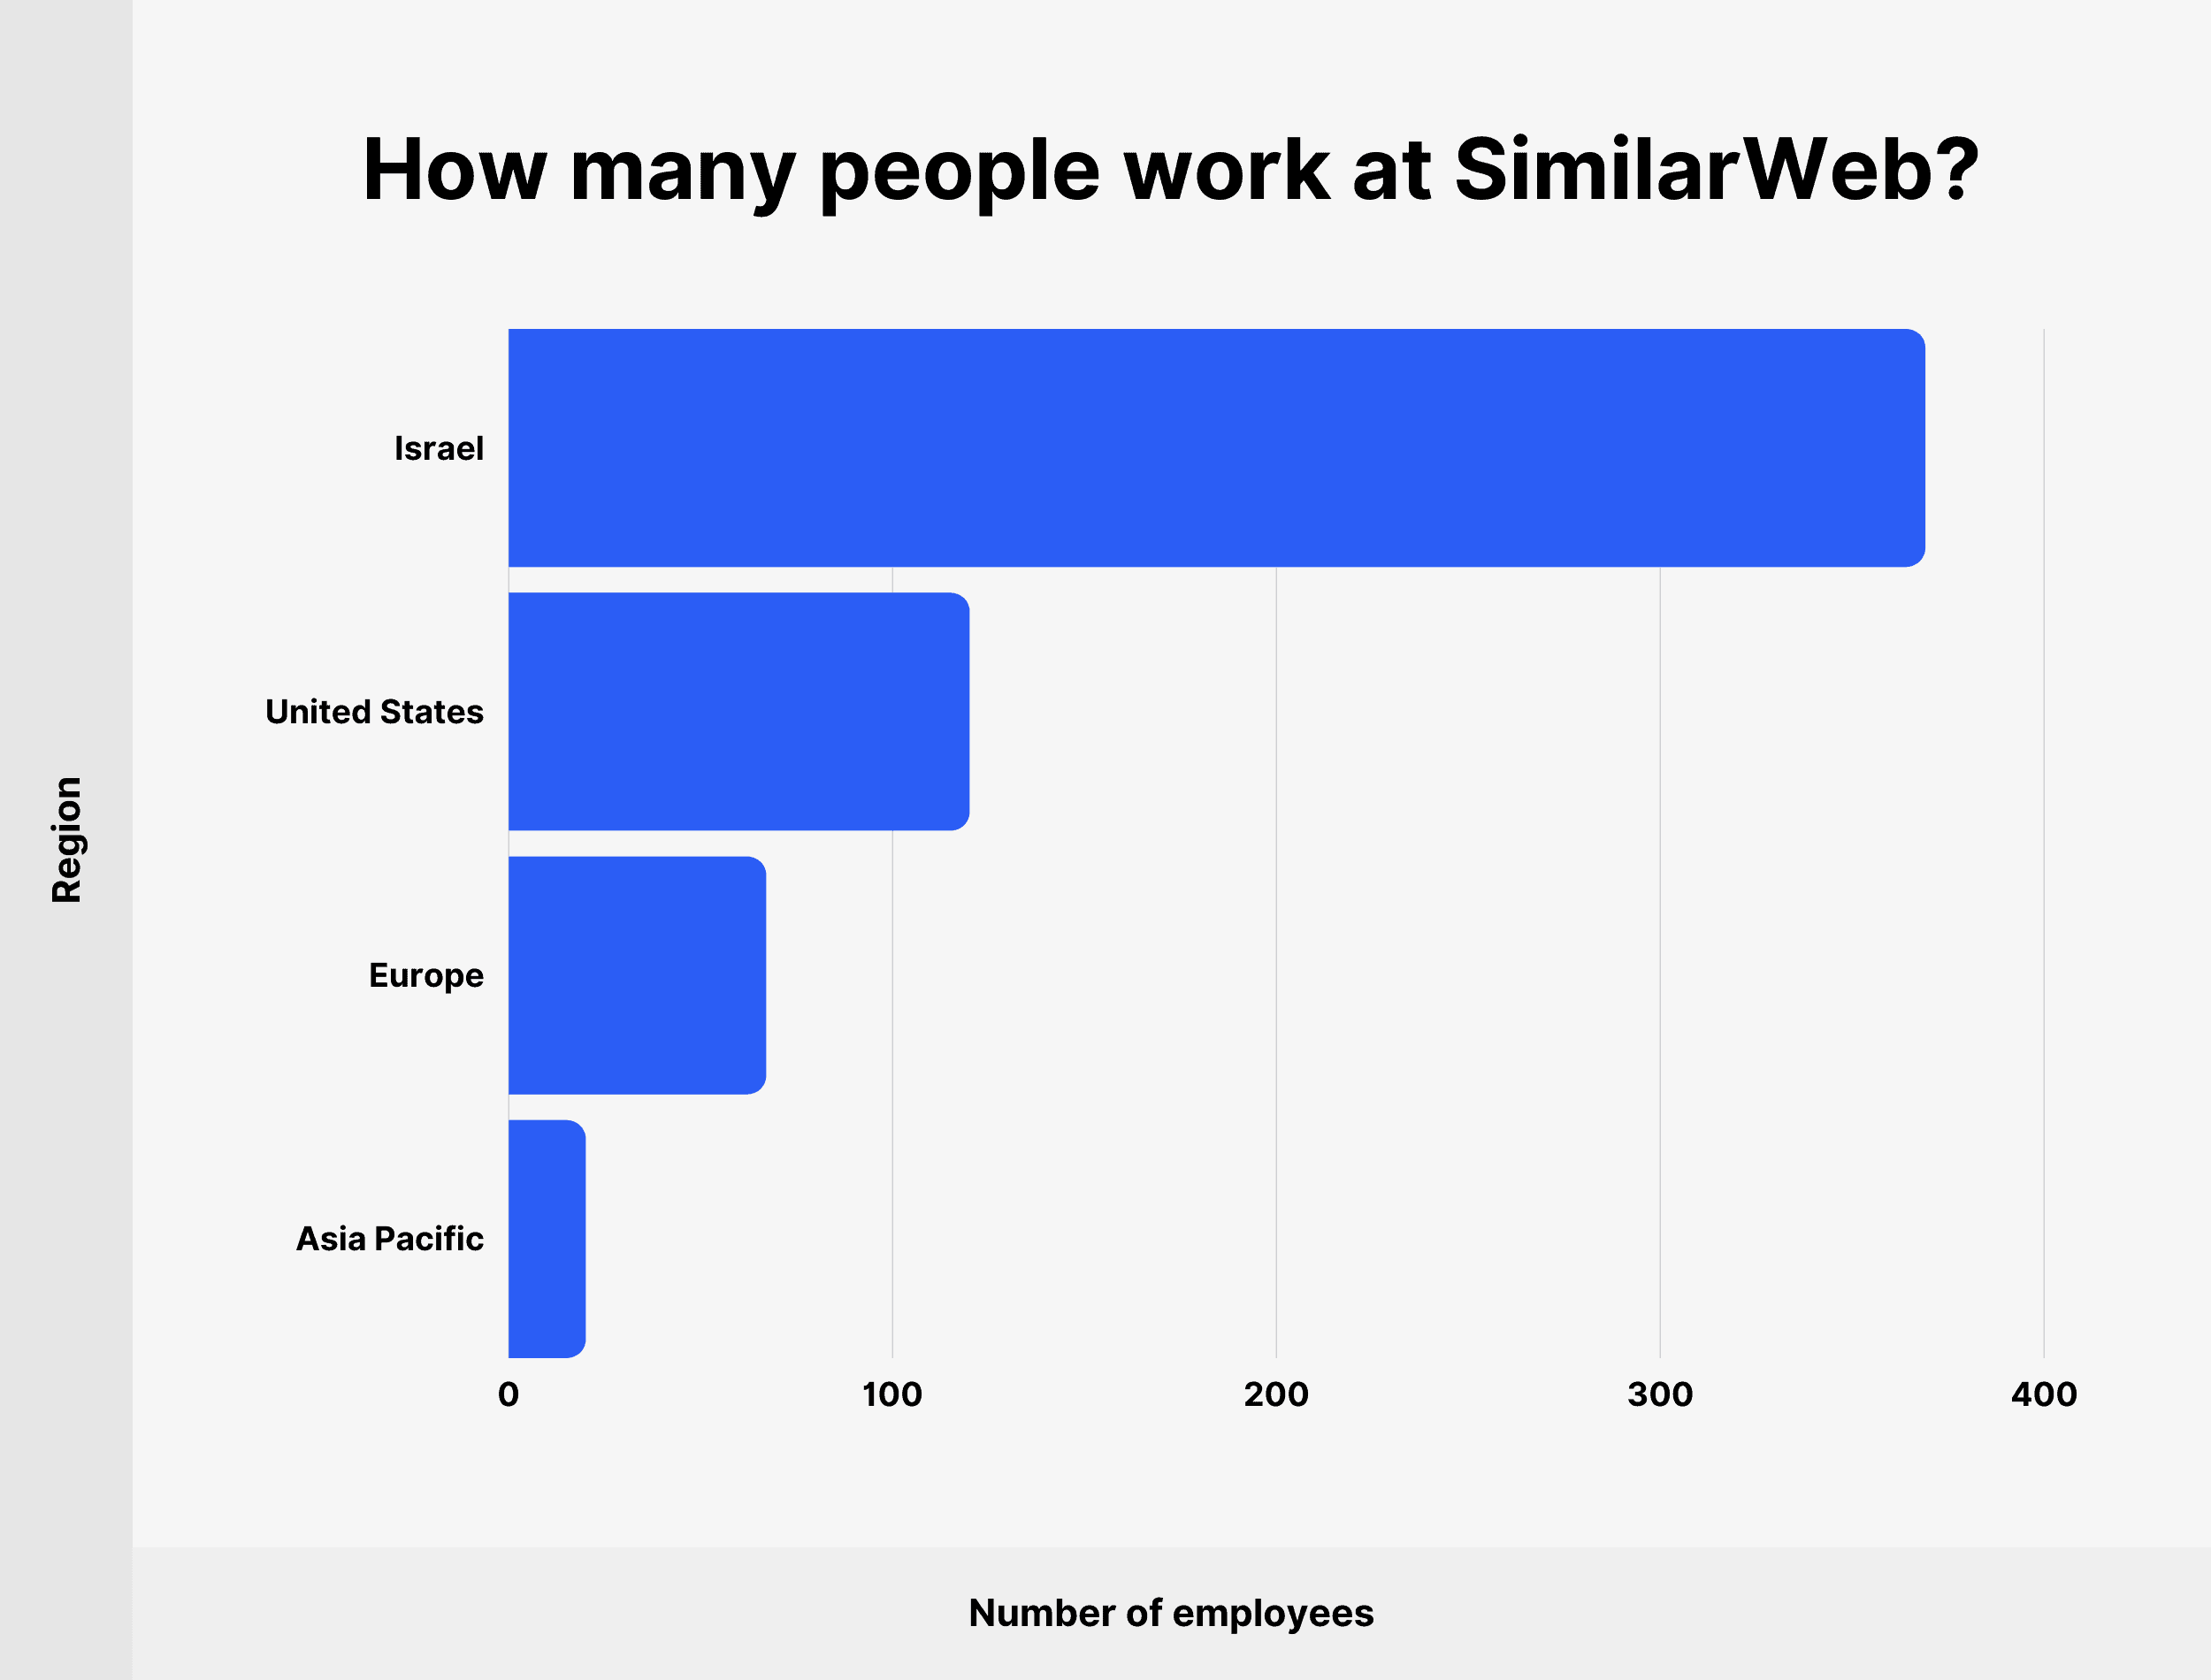 How many people work at SimilarWeb?